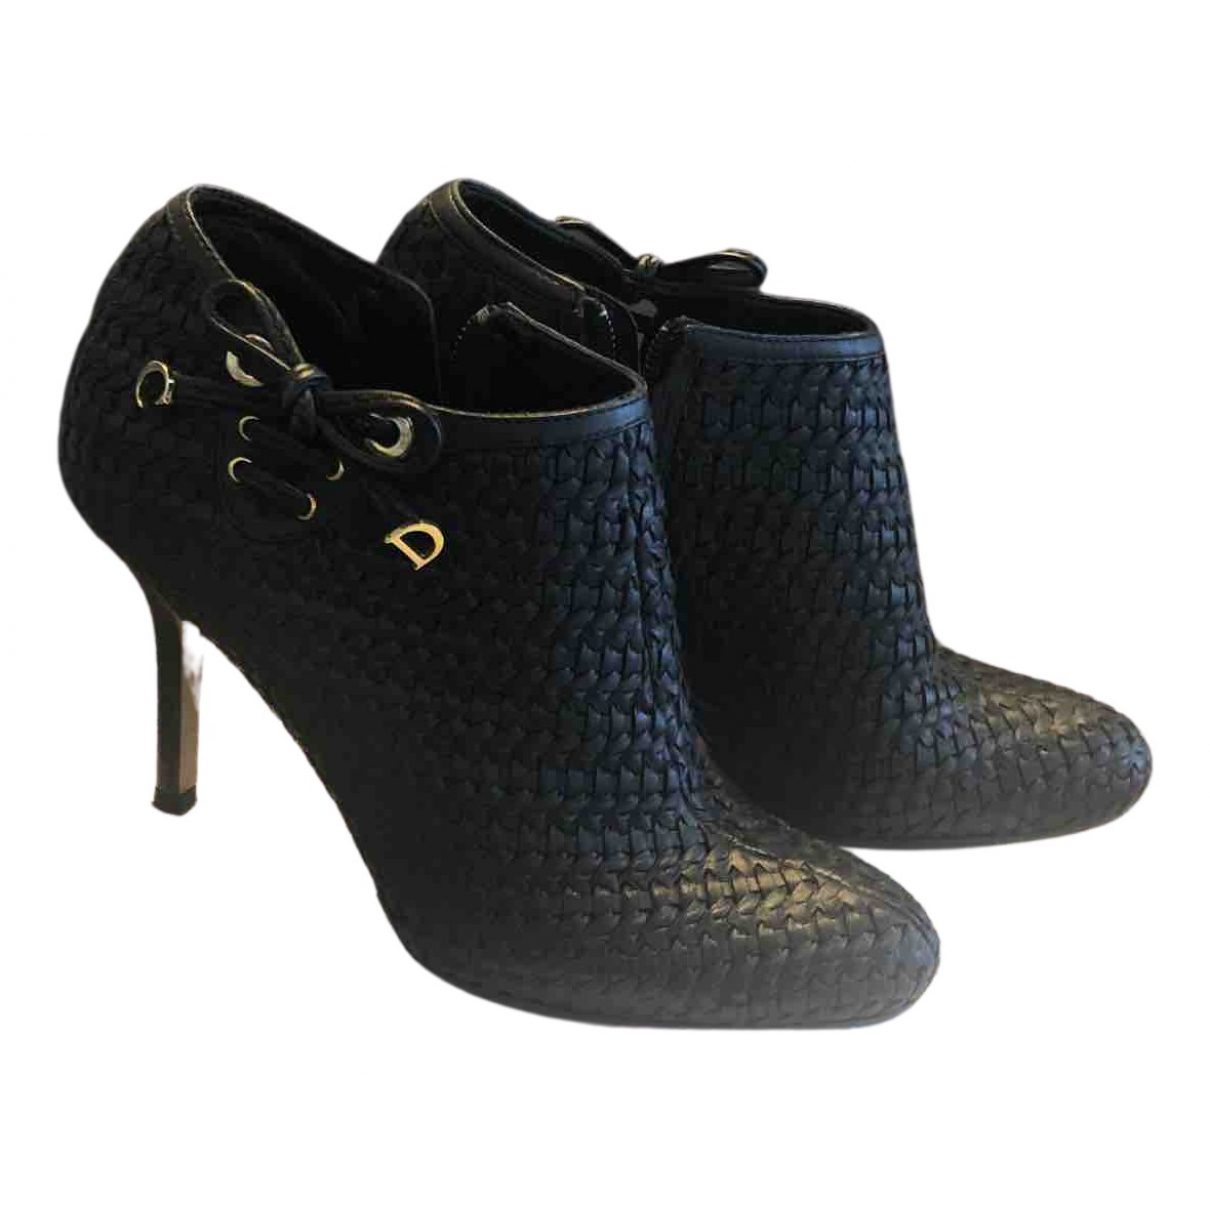 Dior N Black Leather Ankle boots for Women 37.5 EU